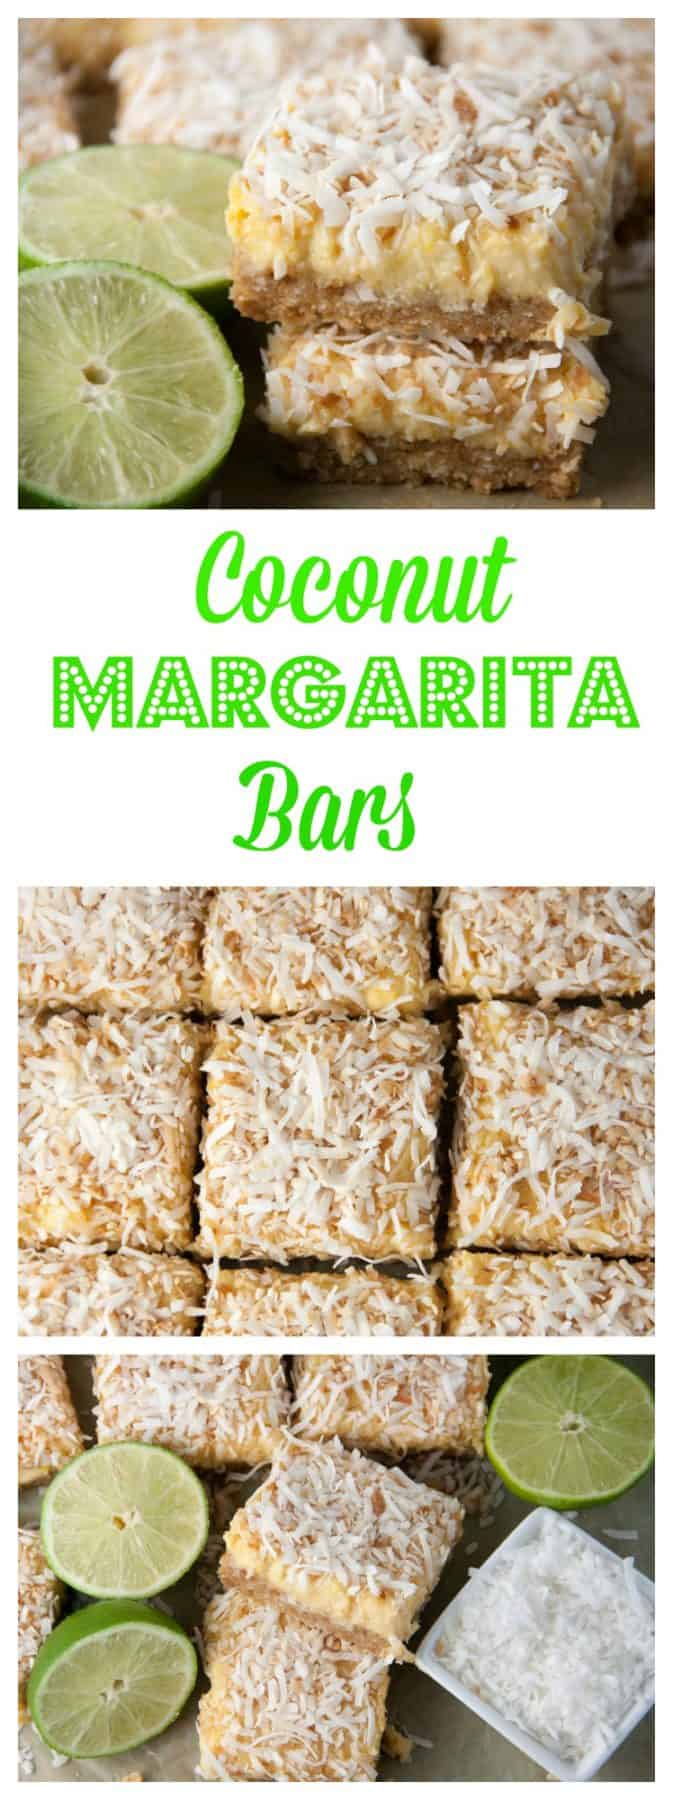 Perfect Cinco de Mayo treat! Coconut shortbread crust, tequila lime filling, and spirnkled with toasted coconut!